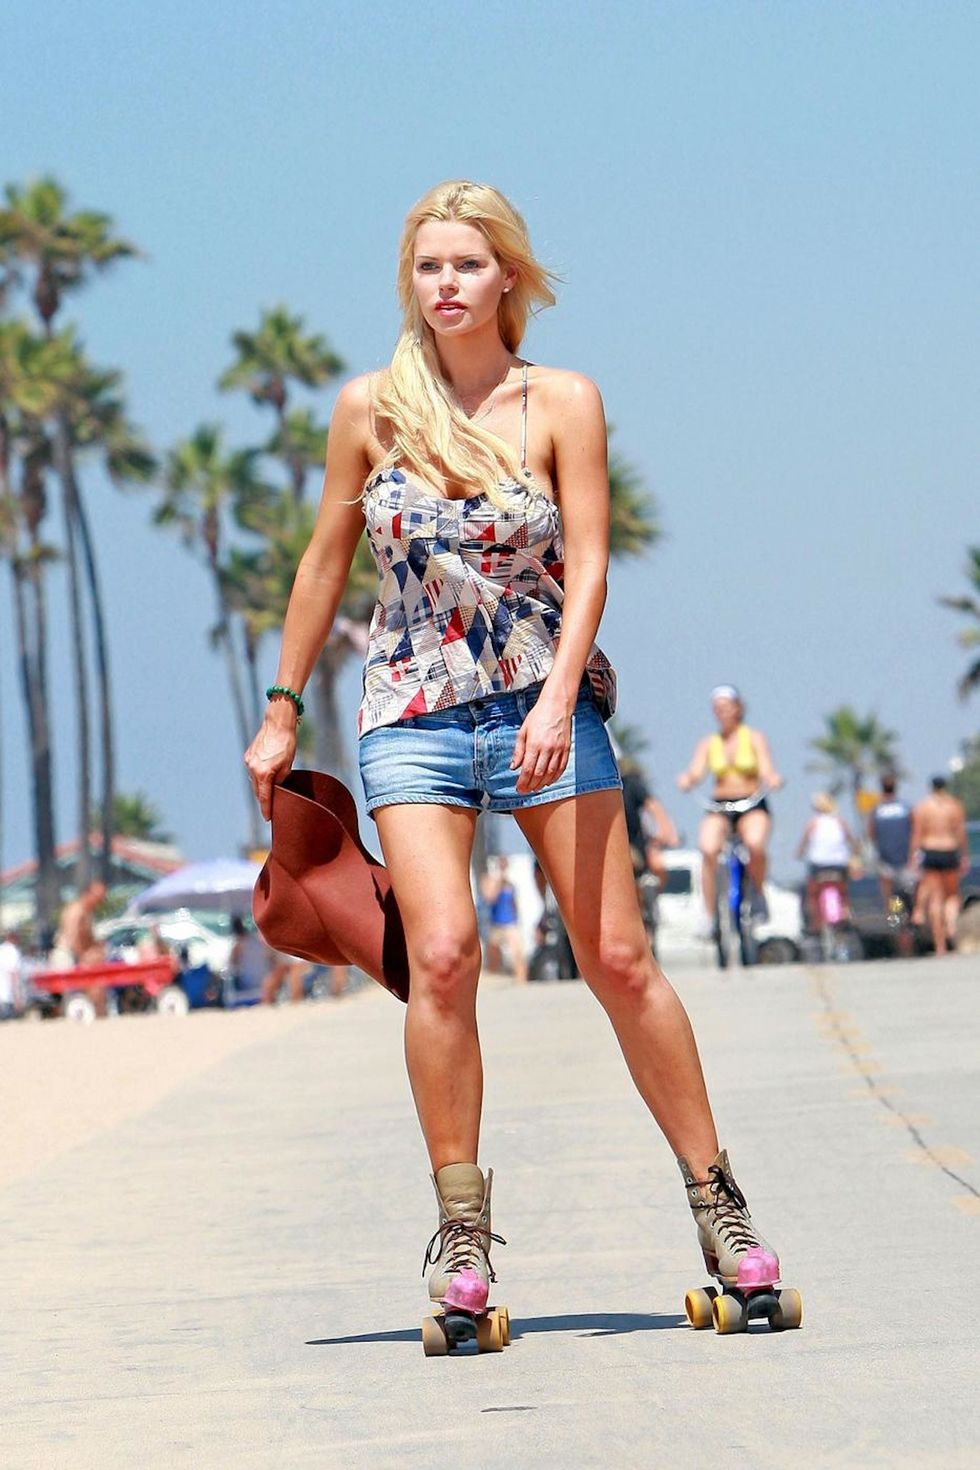 sophie-monk-leggy-with-downblouse-at-the-beach-01